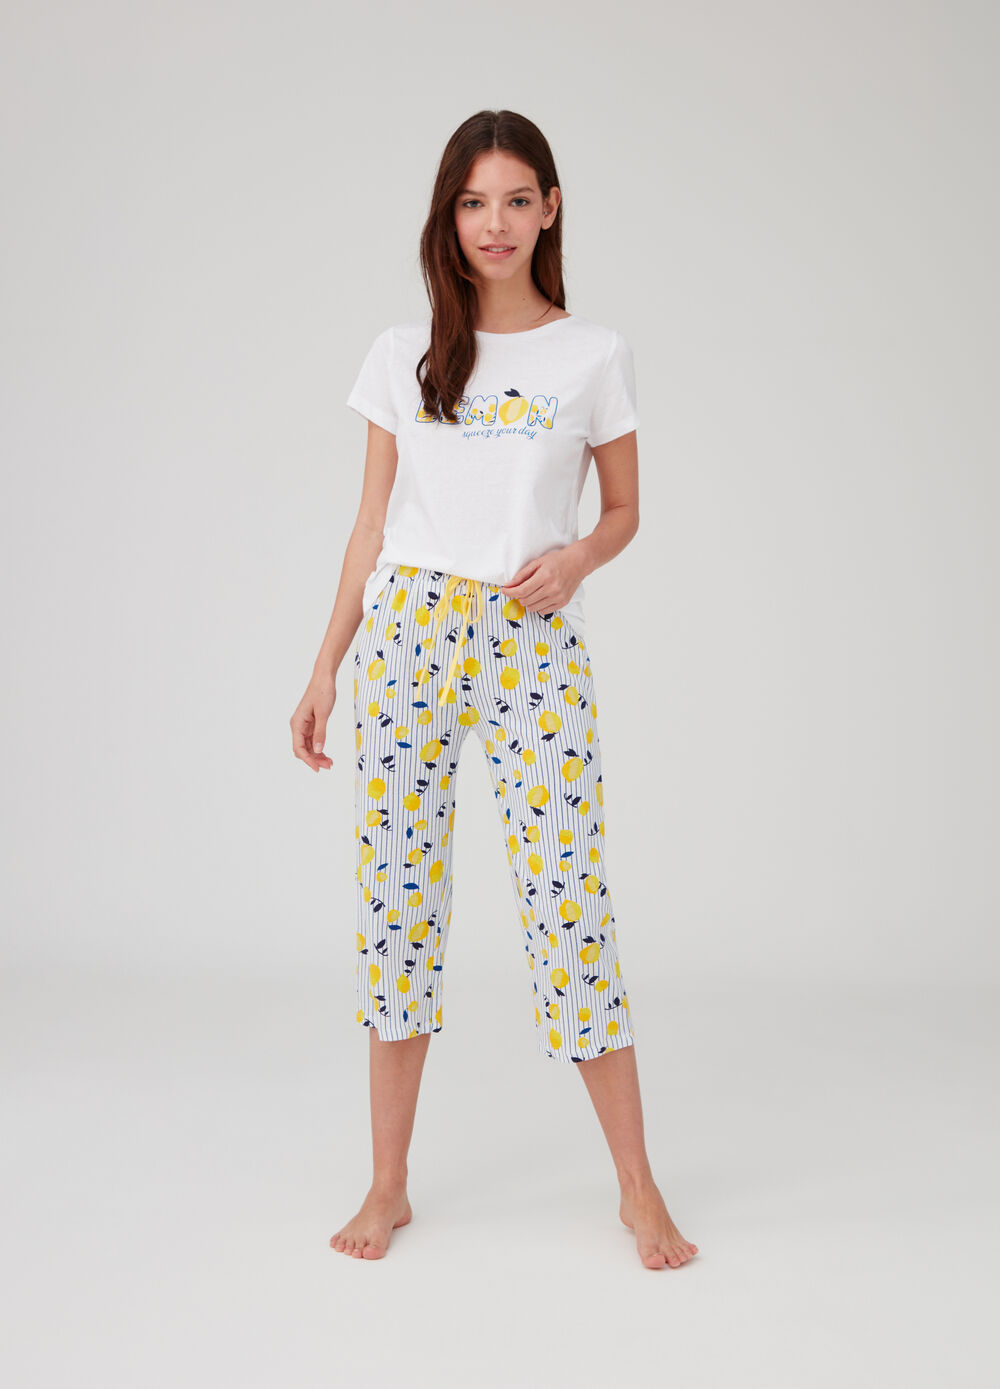 Pyjama top and trousers with lemons pattern